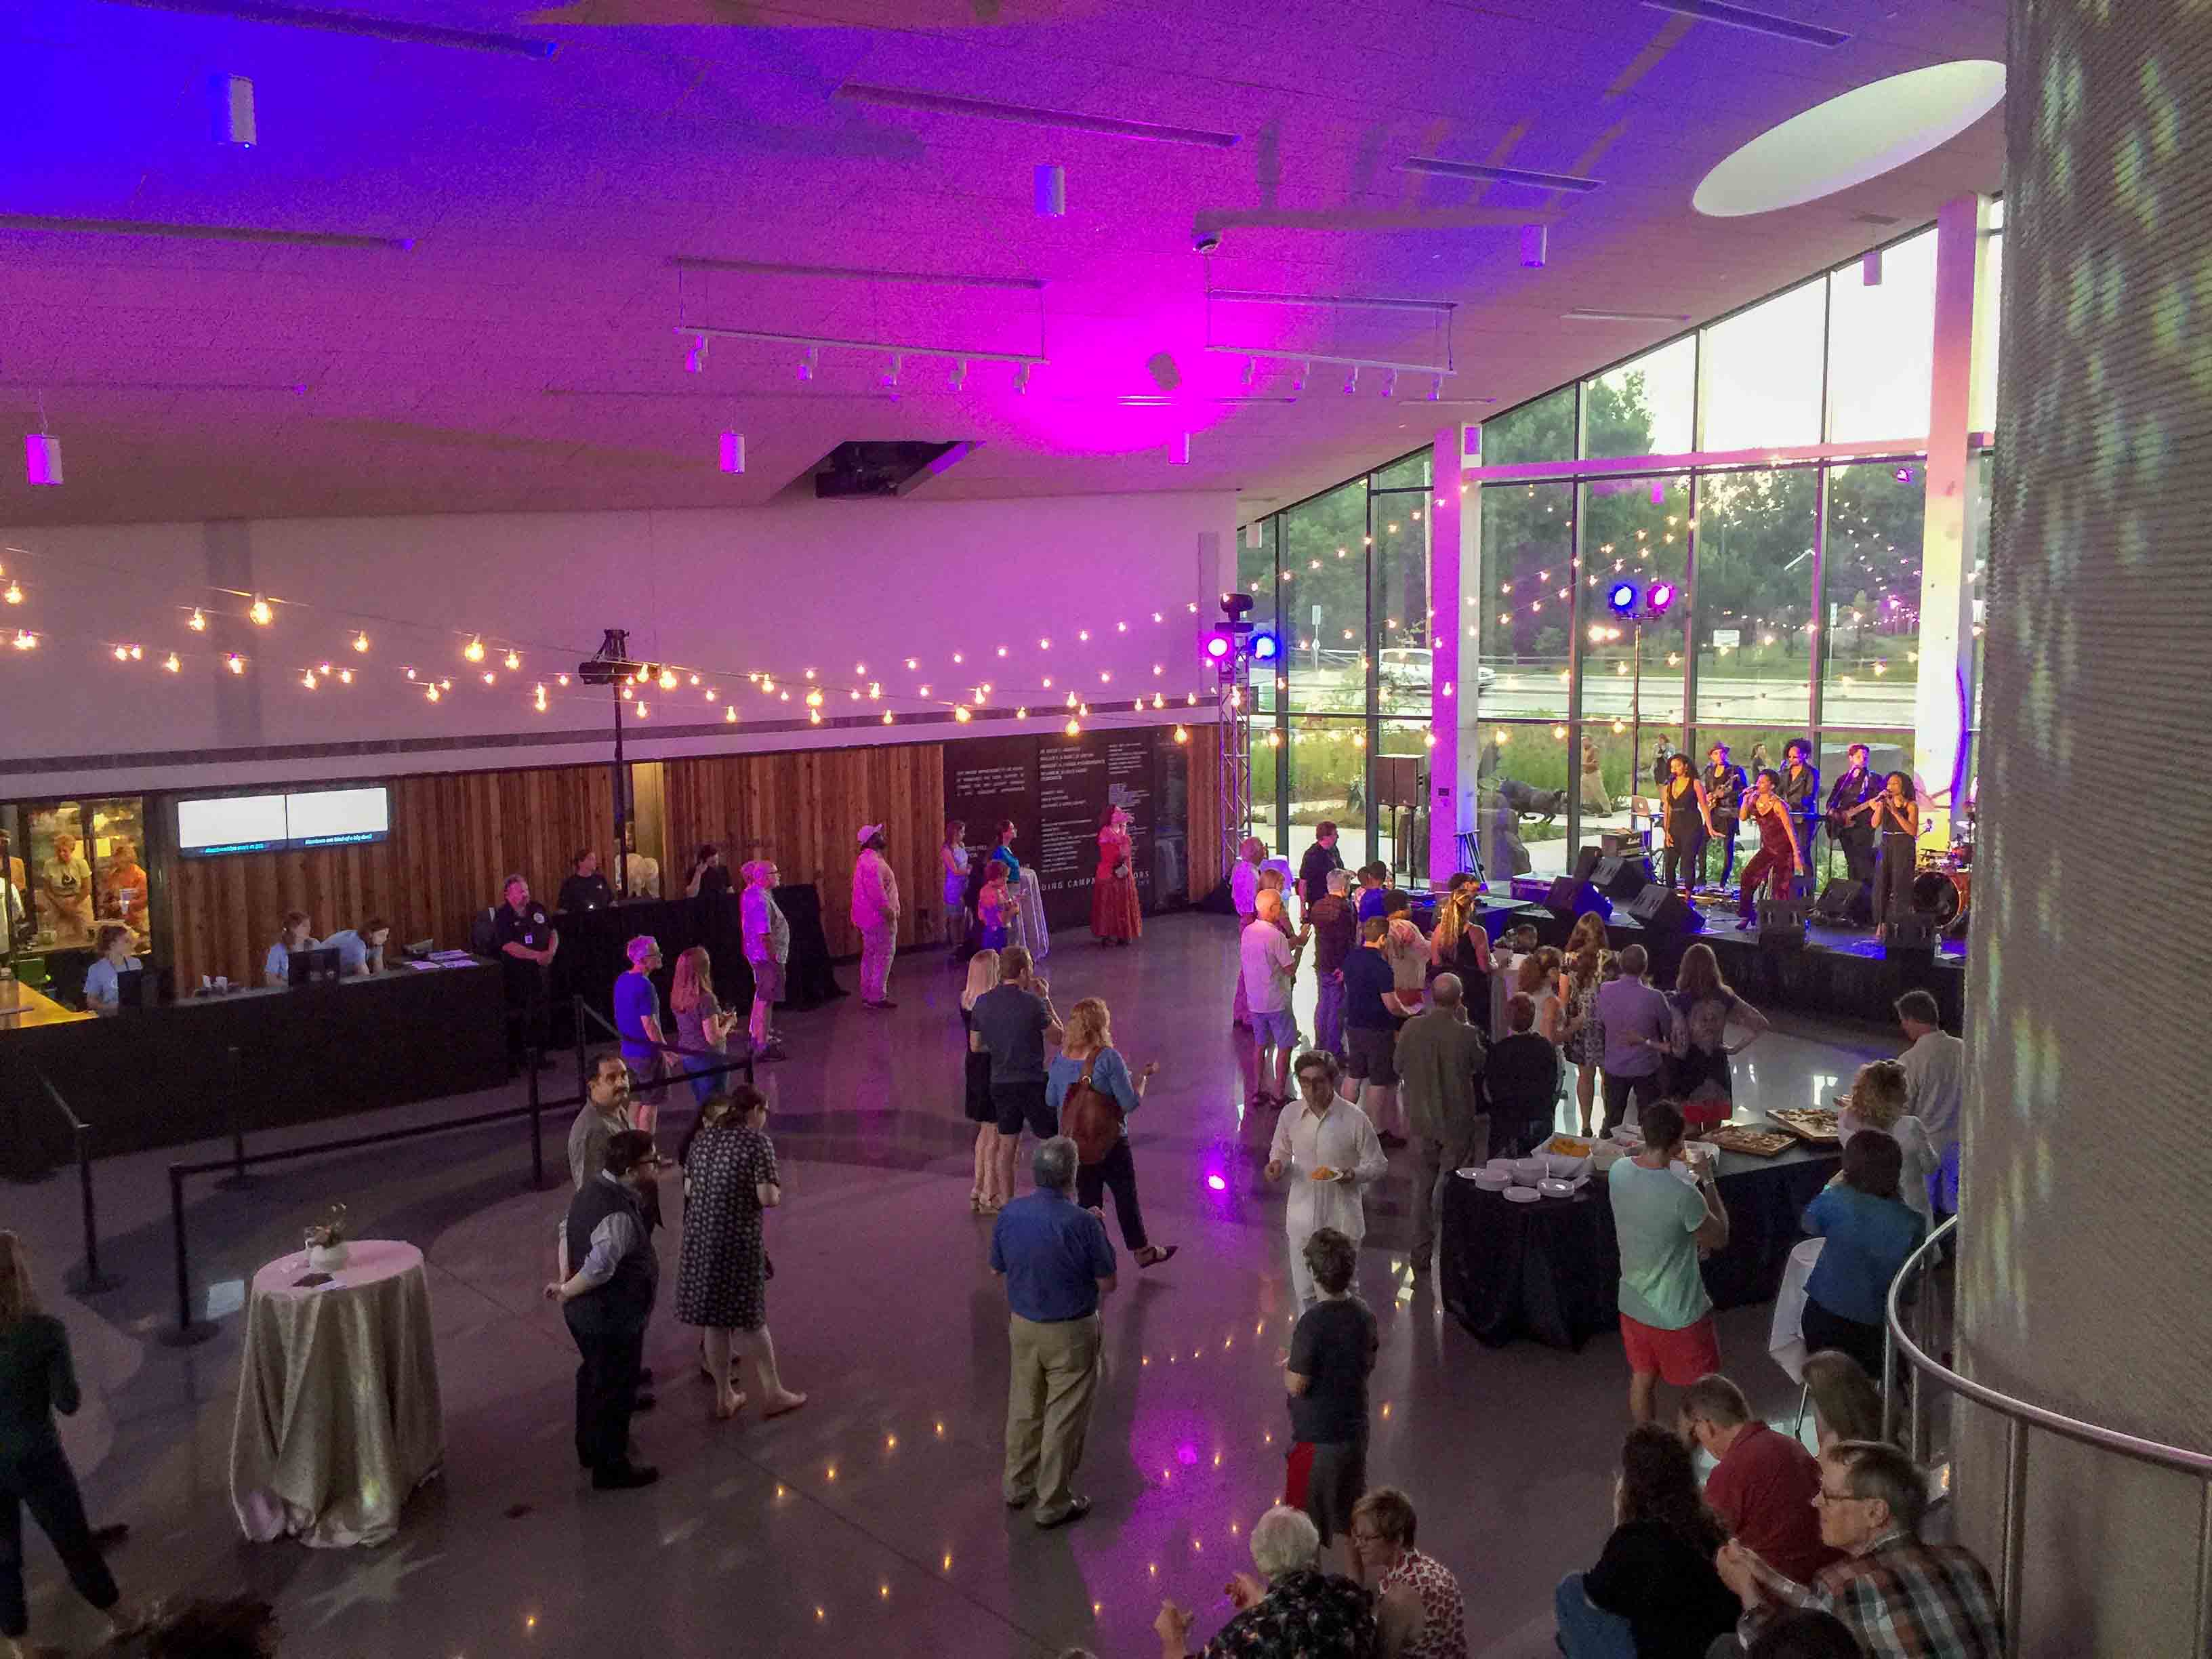 Horizon Hall with strings of cafe lights, purple and blue lights shining on ceiling, and band playing for audience